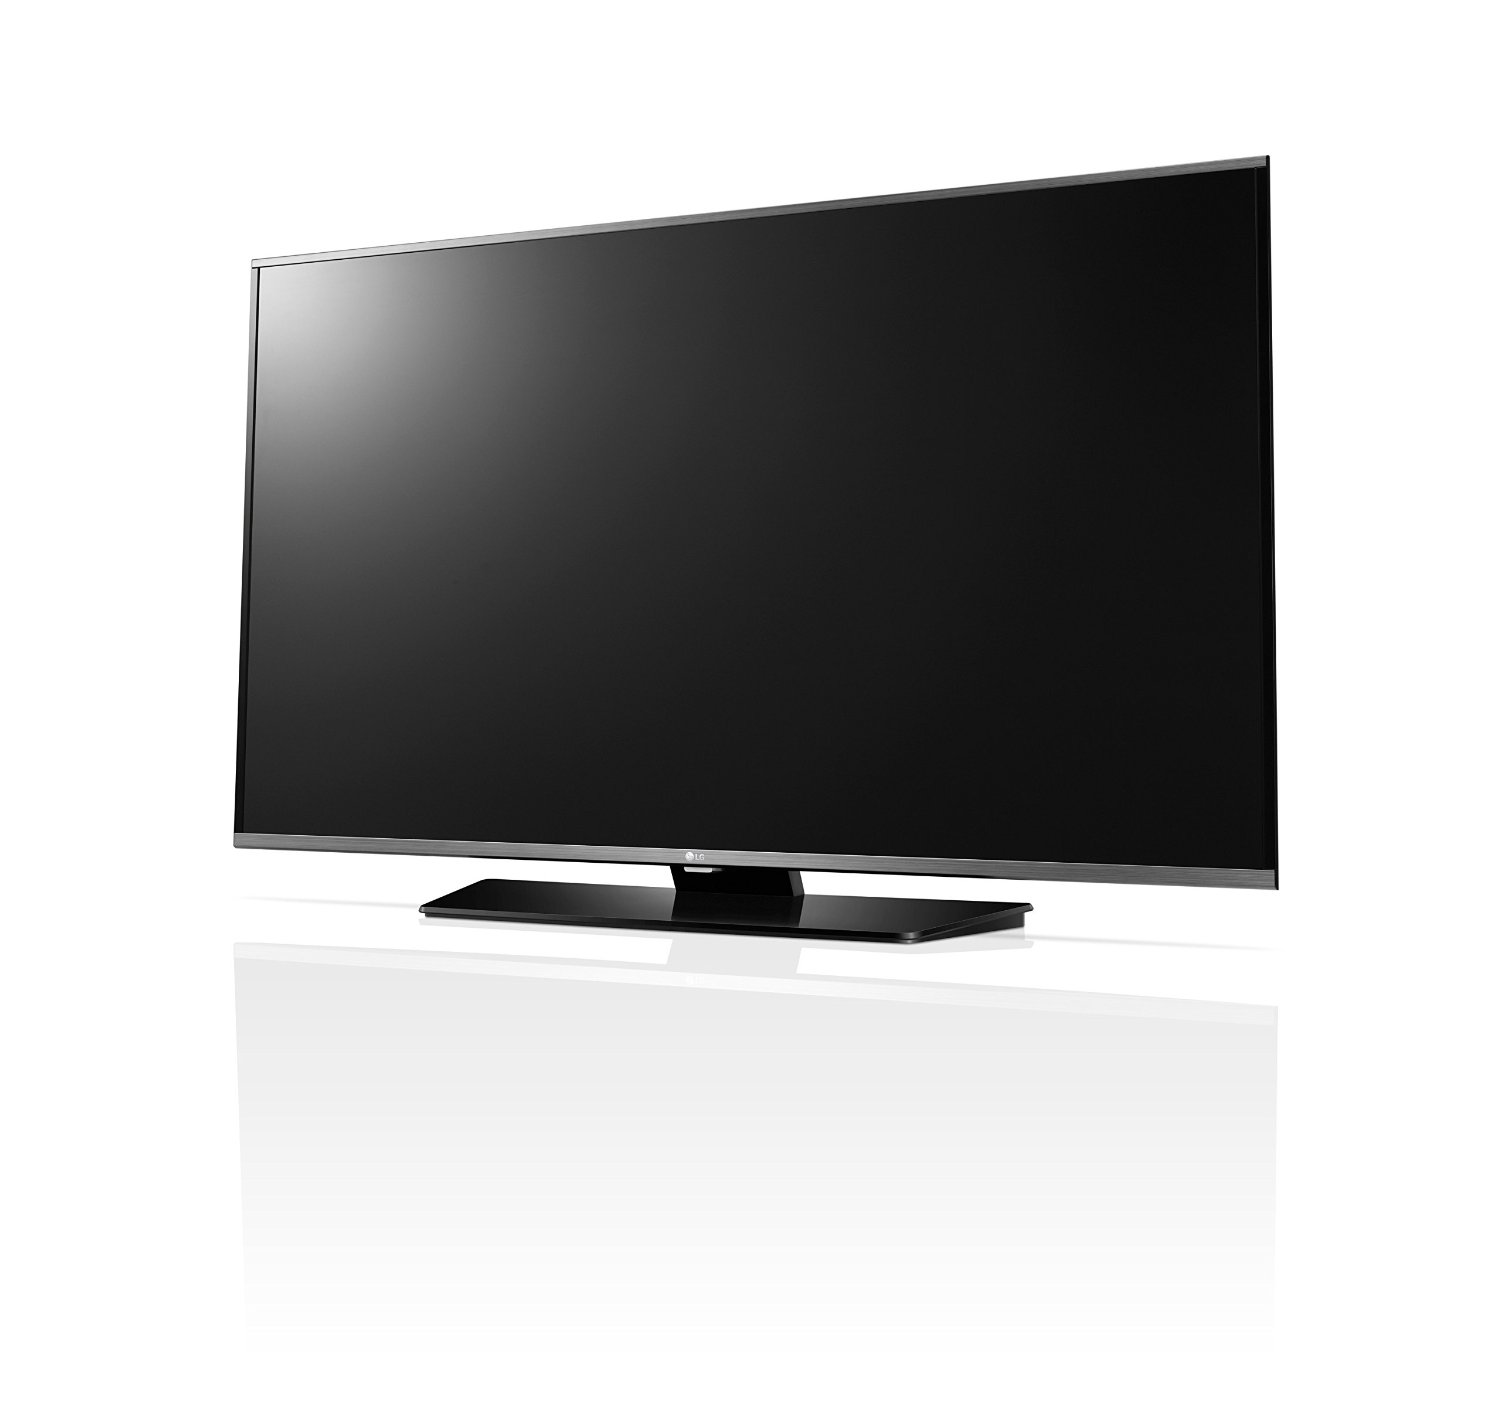 lg 55lf6300 led tv review latest led tv reviews uk led tv reviewslatest led tv reviews uk. Black Bedroom Furniture Sets. Home Design Ideas